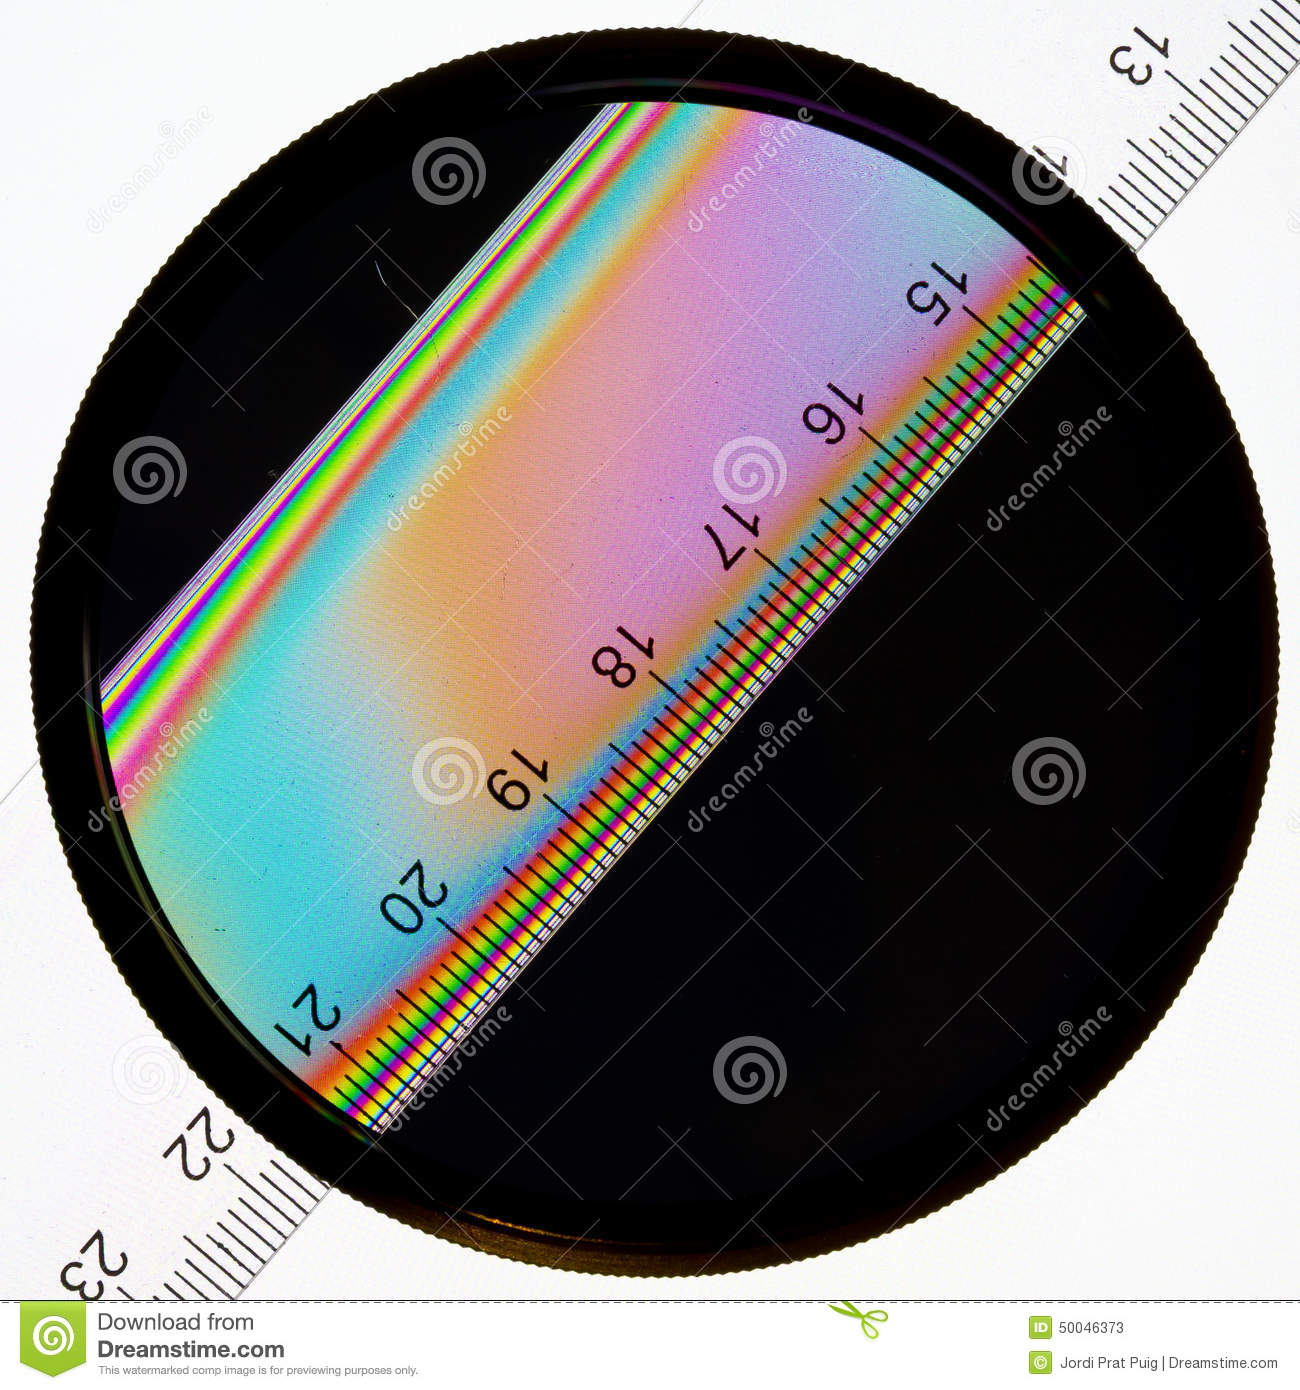 Circular Polarizer Filter Effect Stock Images.